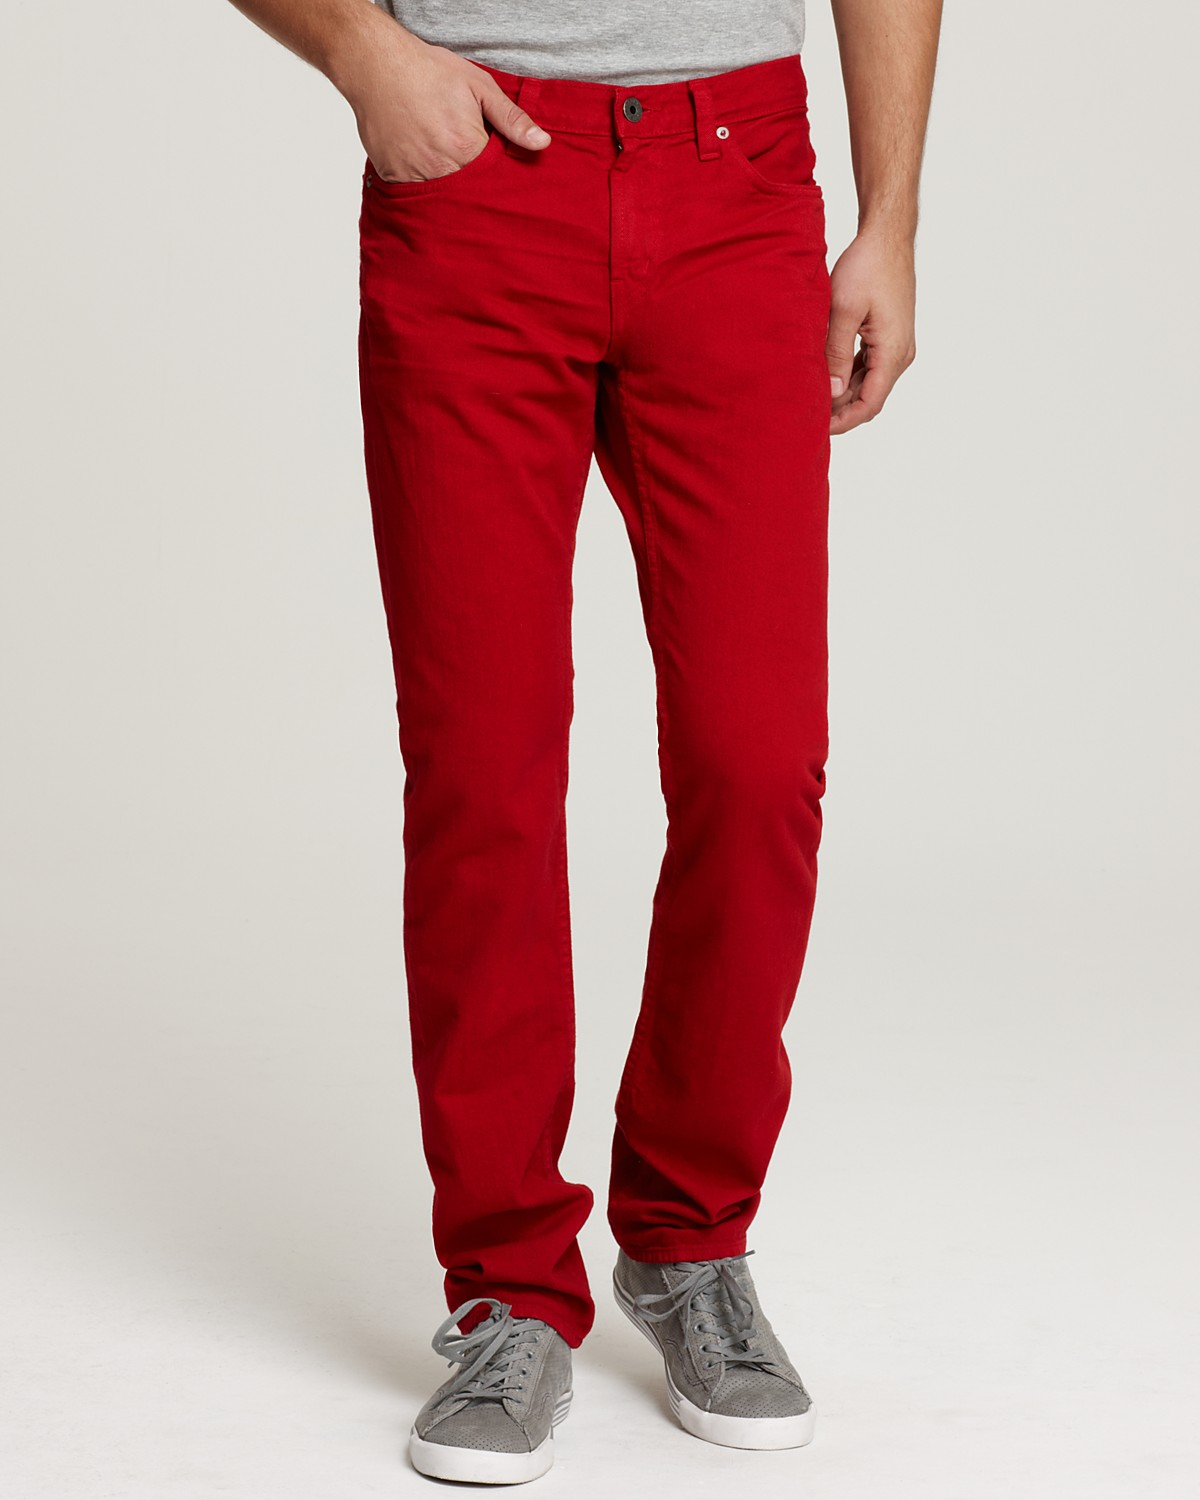 denim mens red jeans VZVPXJF